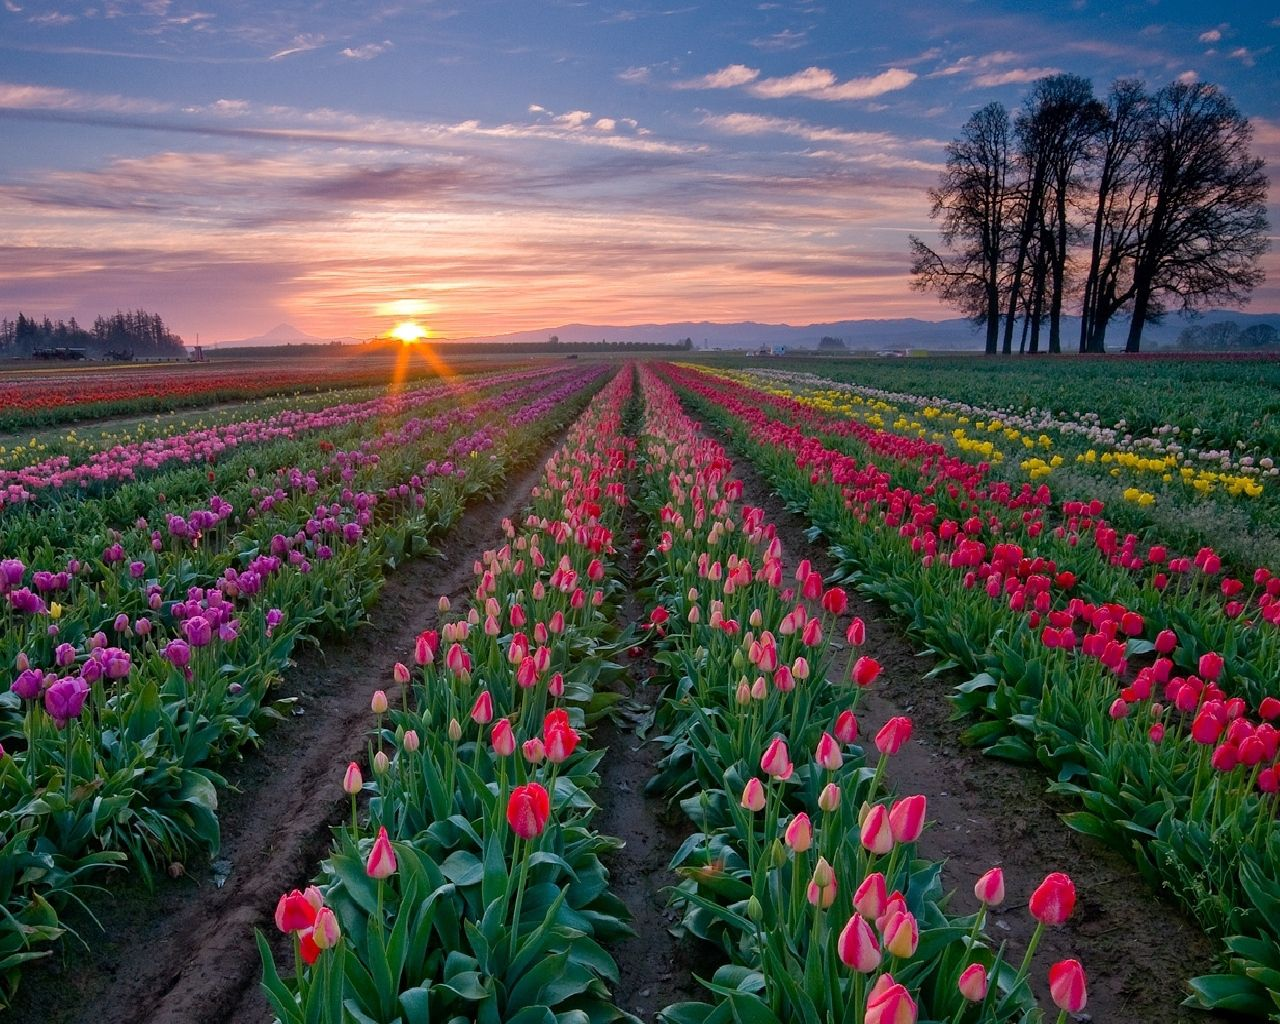 115930 download wallpaper Flowers, Trees, Sunset, Sky, Tulips, Plantation, Rows, Ranks screensavers and pictures for free